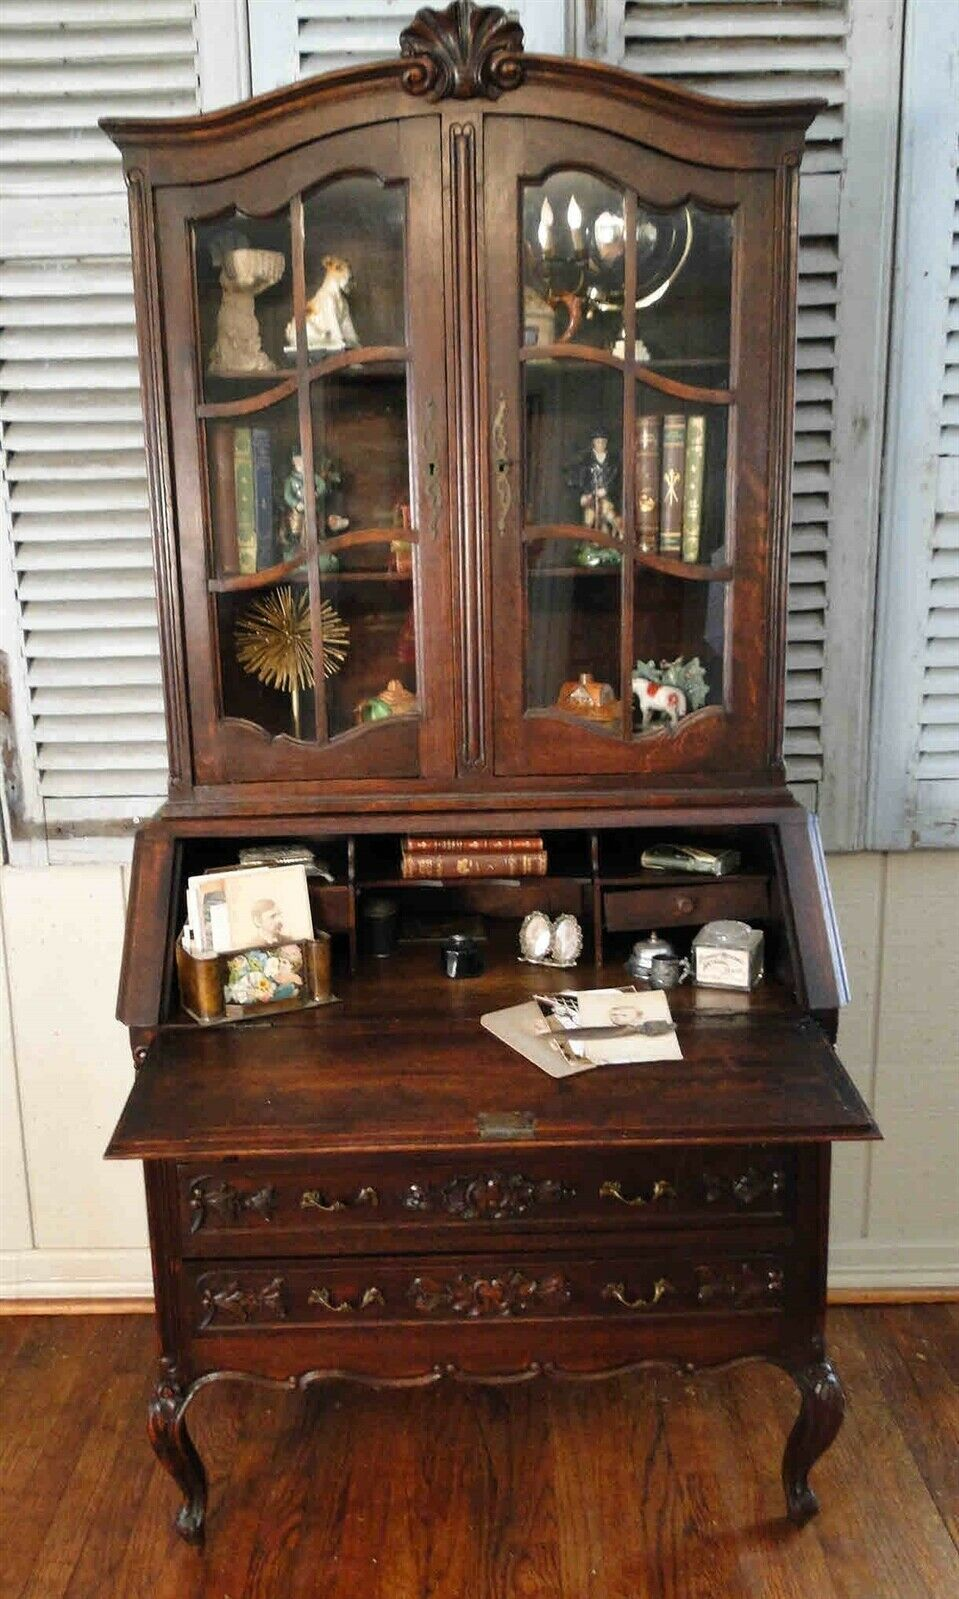 Antique Country French Secretary Desk Bookshelf Display Cubbies Dark Oak Classic